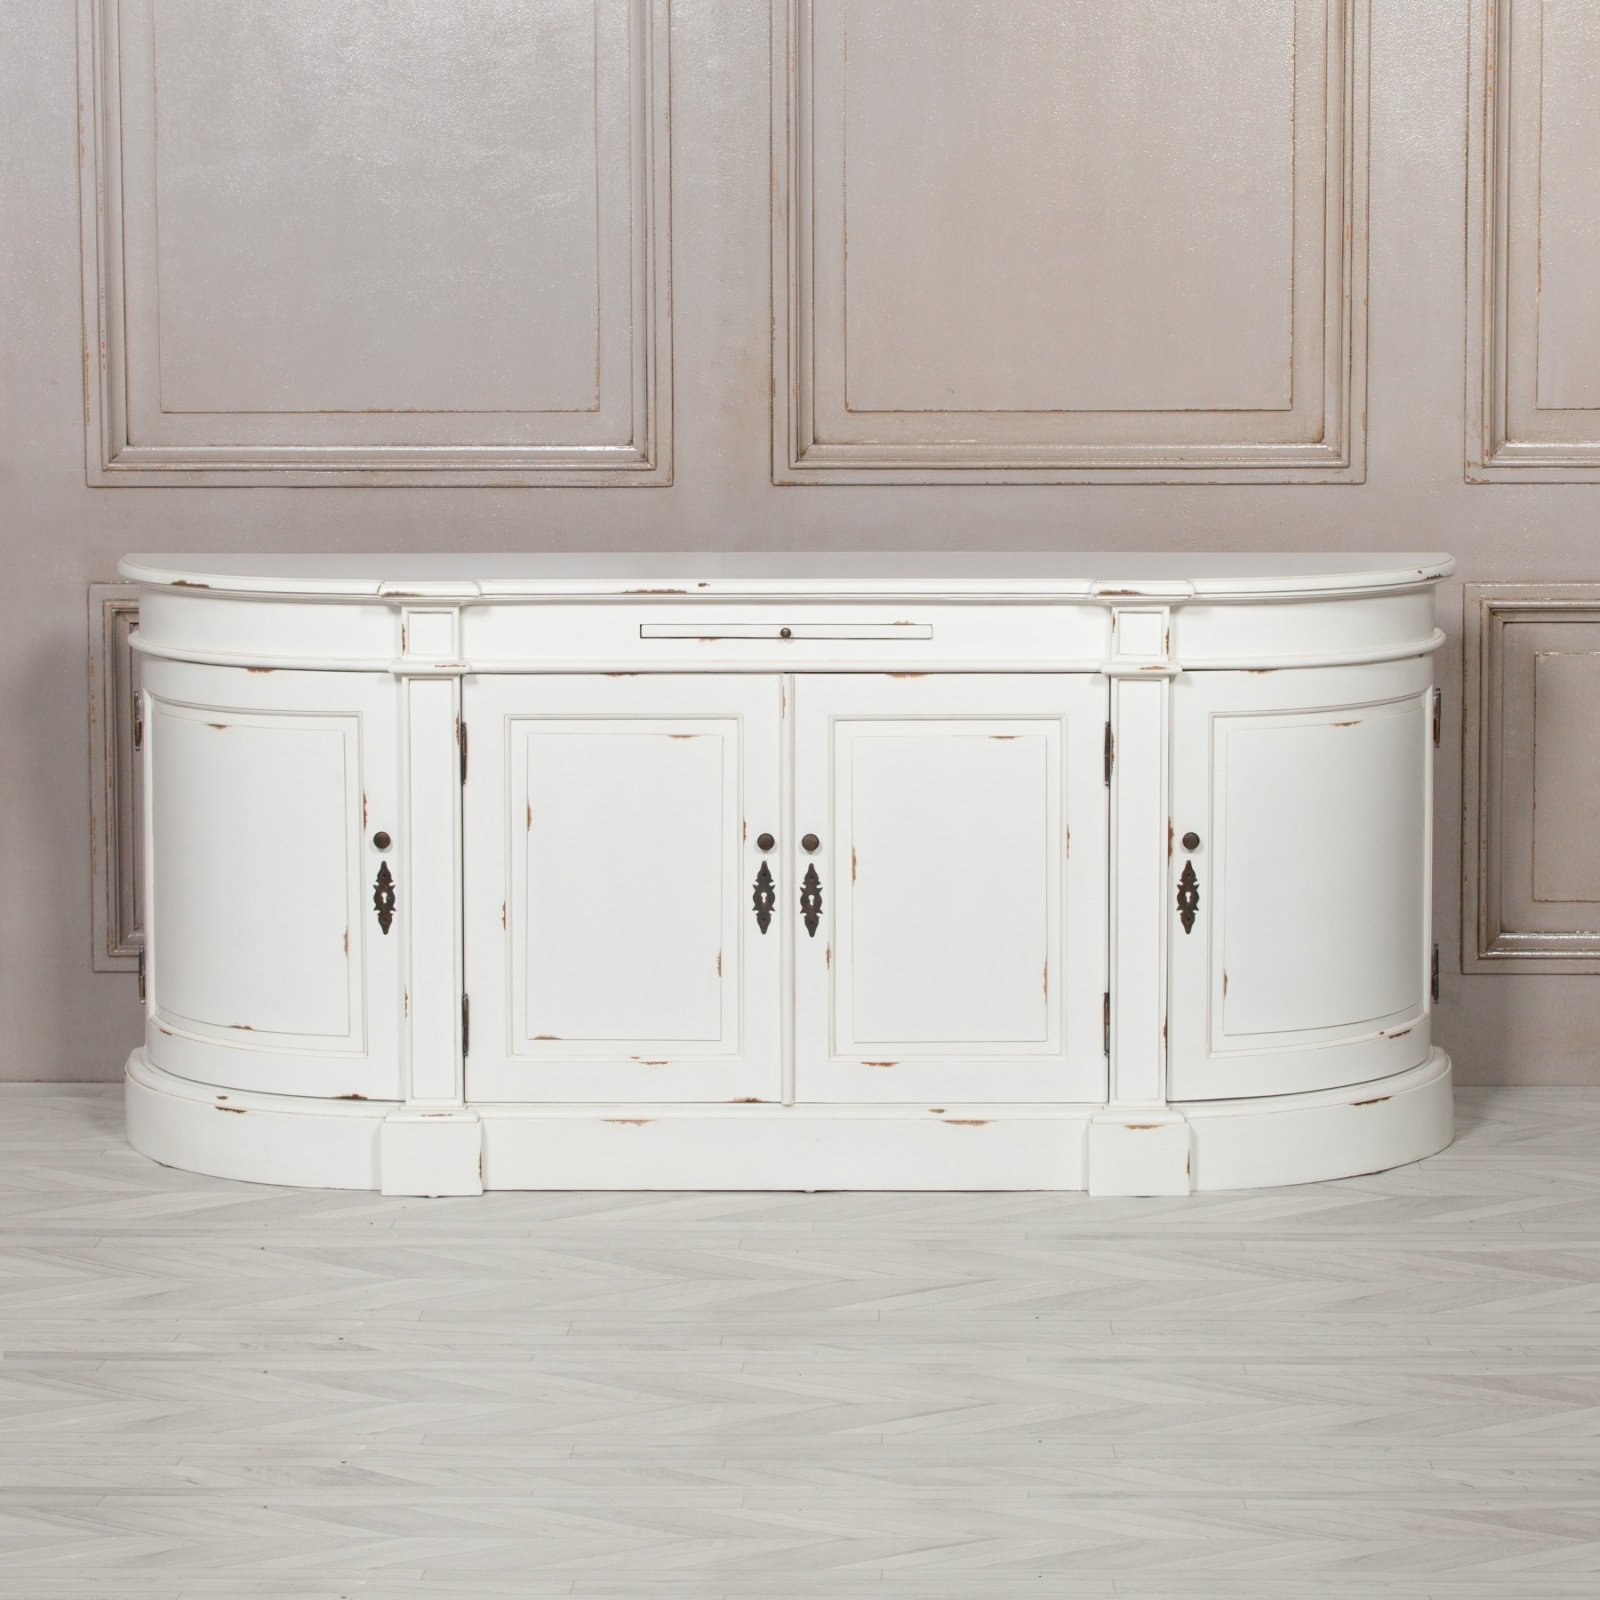 Aged French Distressed White Sideboard Furniture La Maison Chic Luxury Interiors